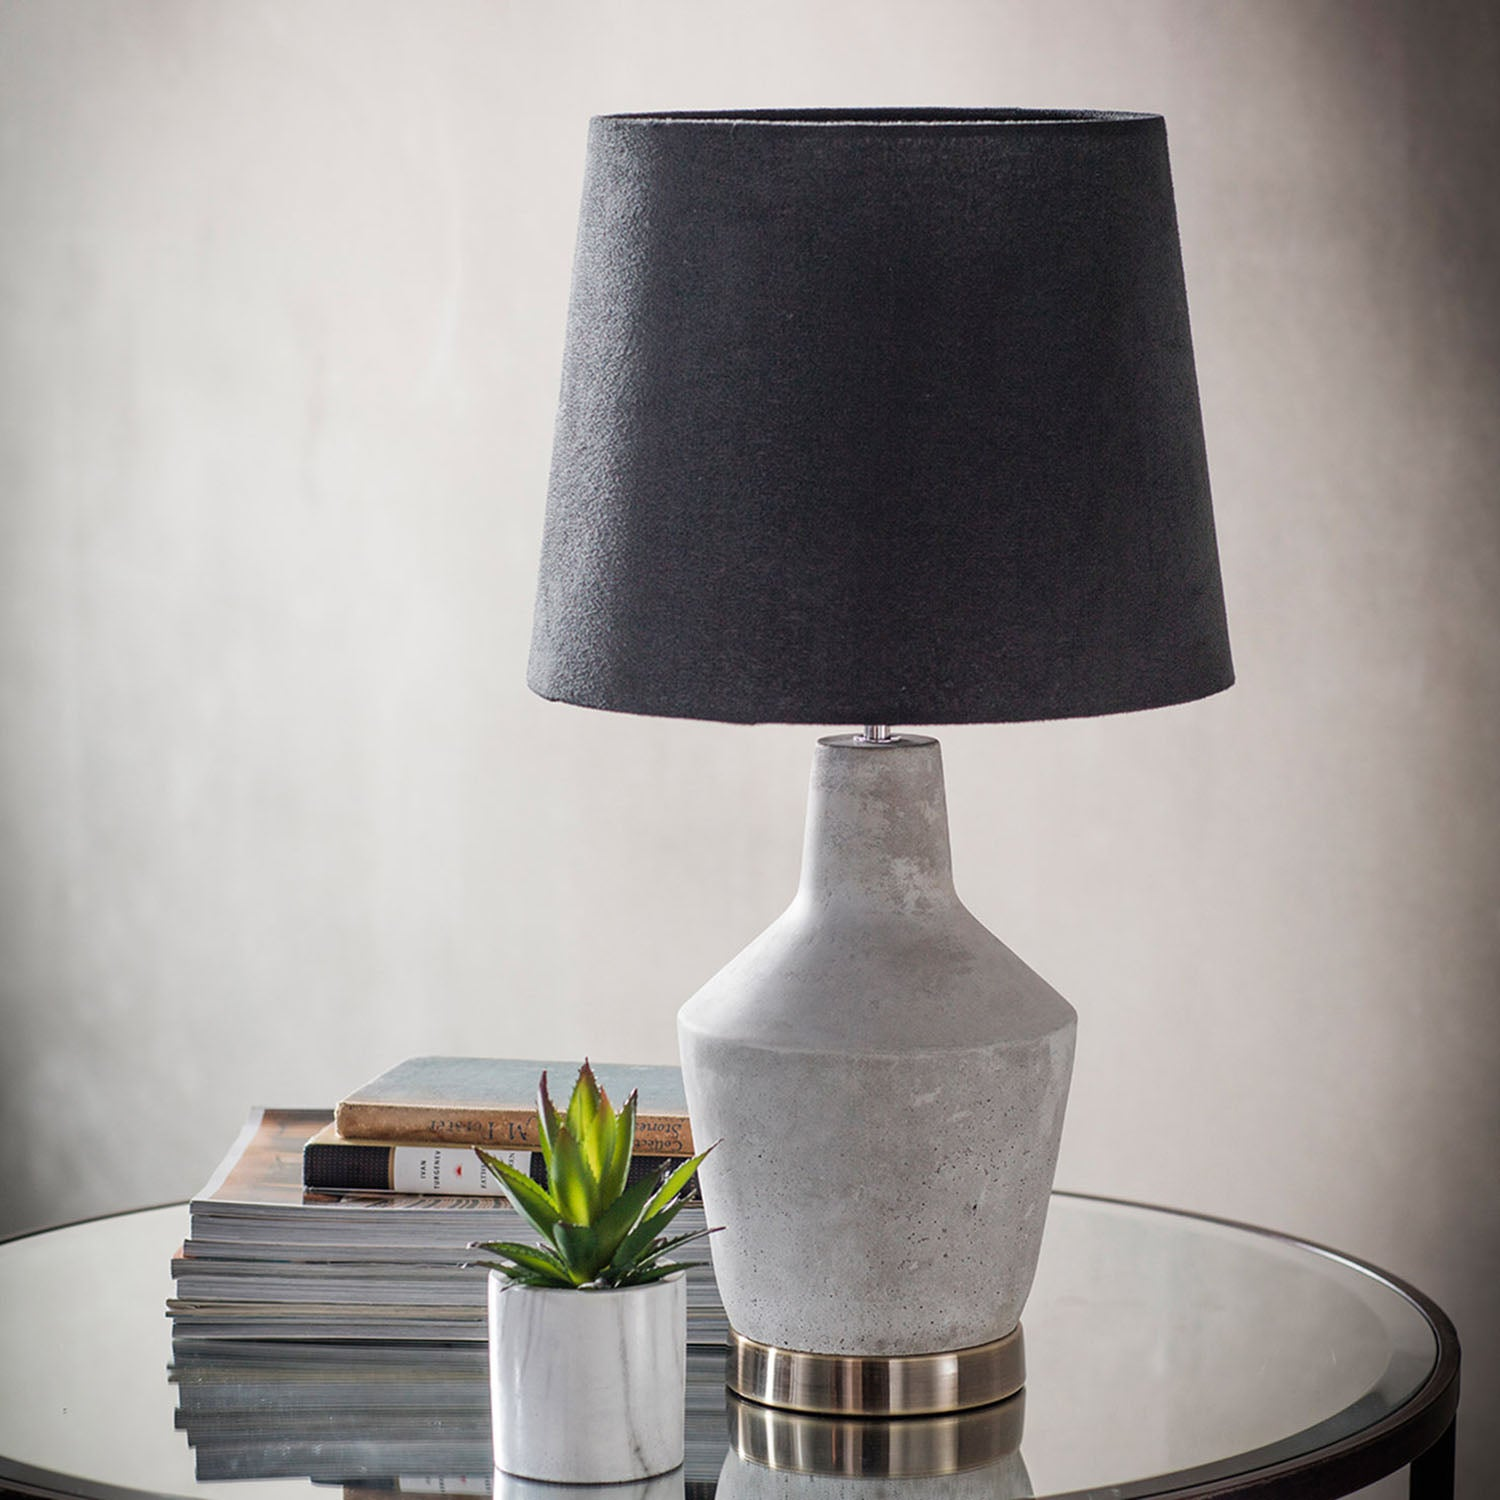 Gallery Direct Gallery Direct Betong Concrete Table Lamp Gold